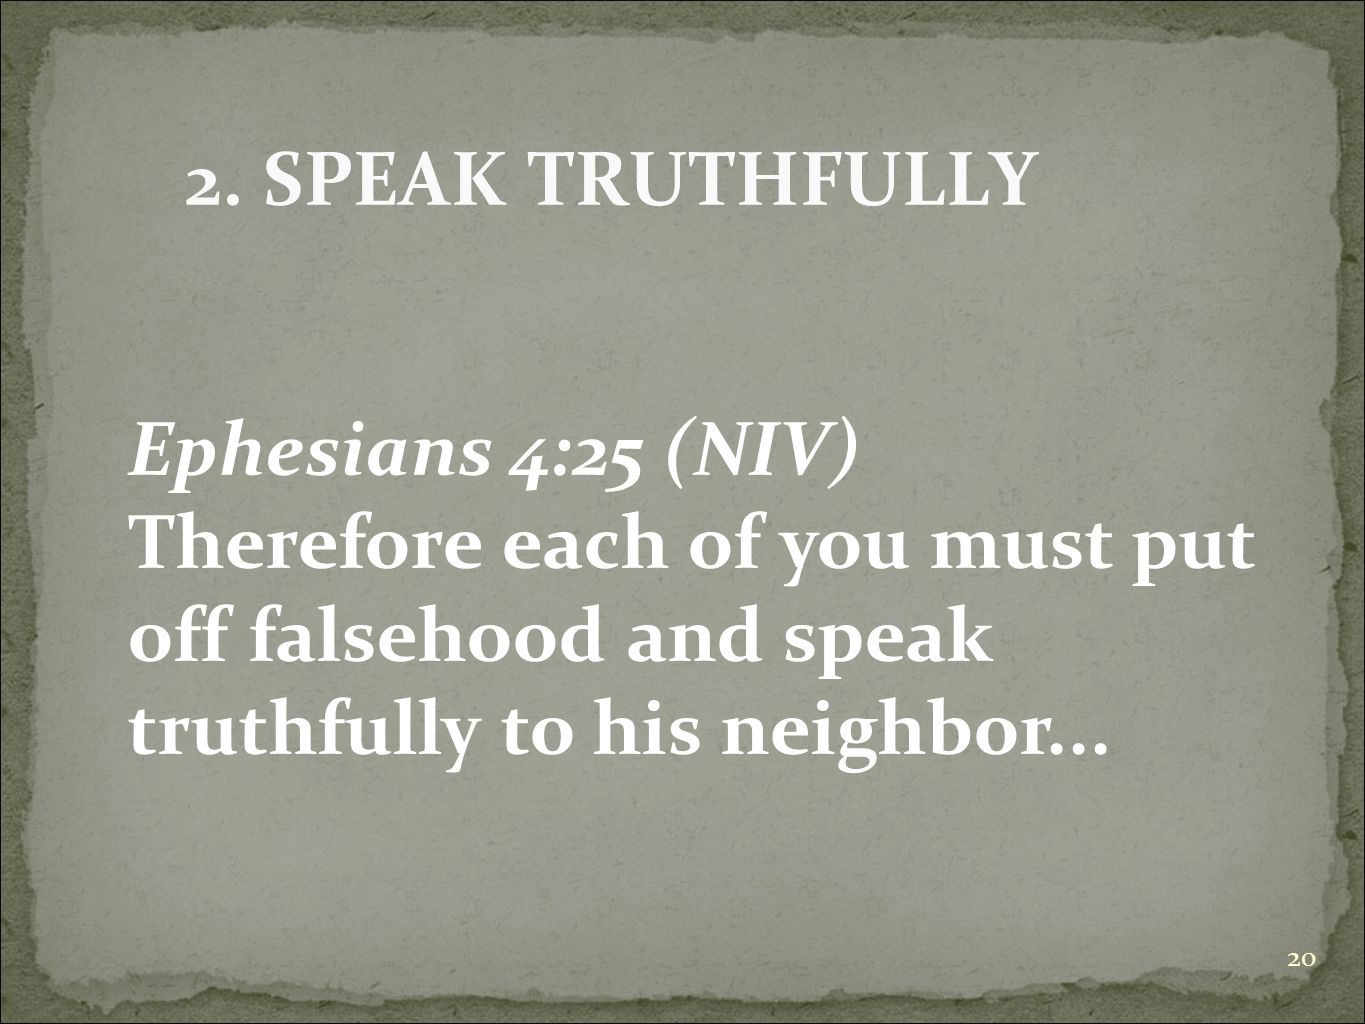 20 Ephesians 4:25 (NIV) Therefore each of you must put off falsehood and speak truthfully to his neighbor... 2. SPEAK TRUTHFULLY